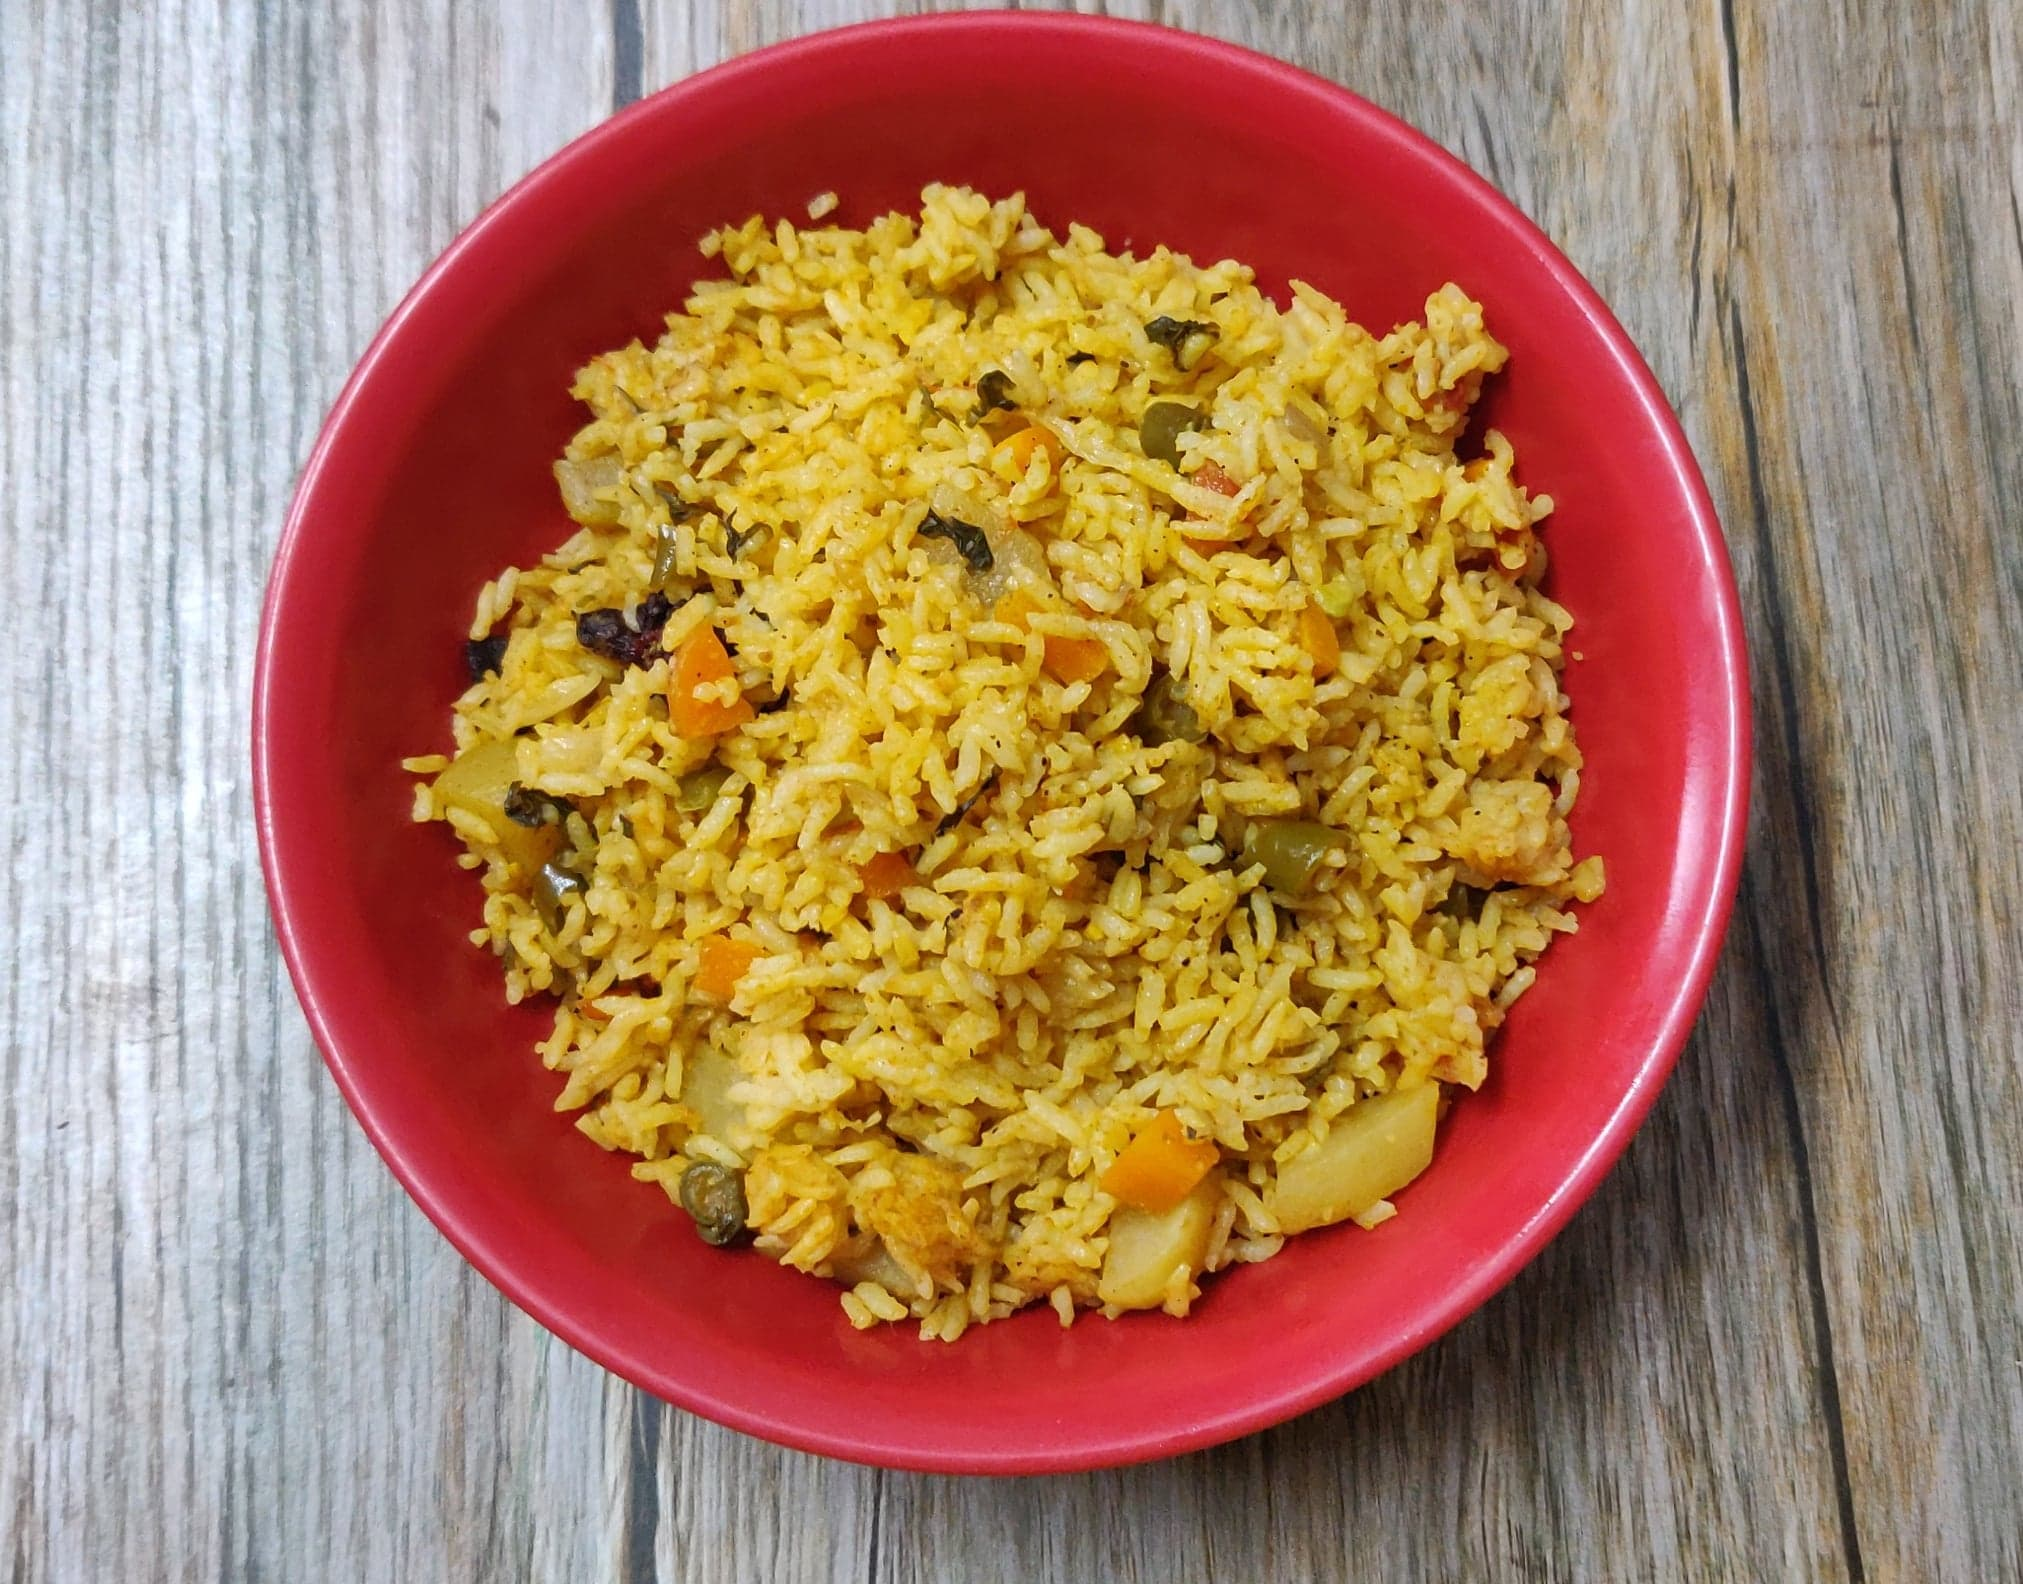 seeraga_samba_vegetable_biryani - 84599290_840368906478968_8205662532292050944_n